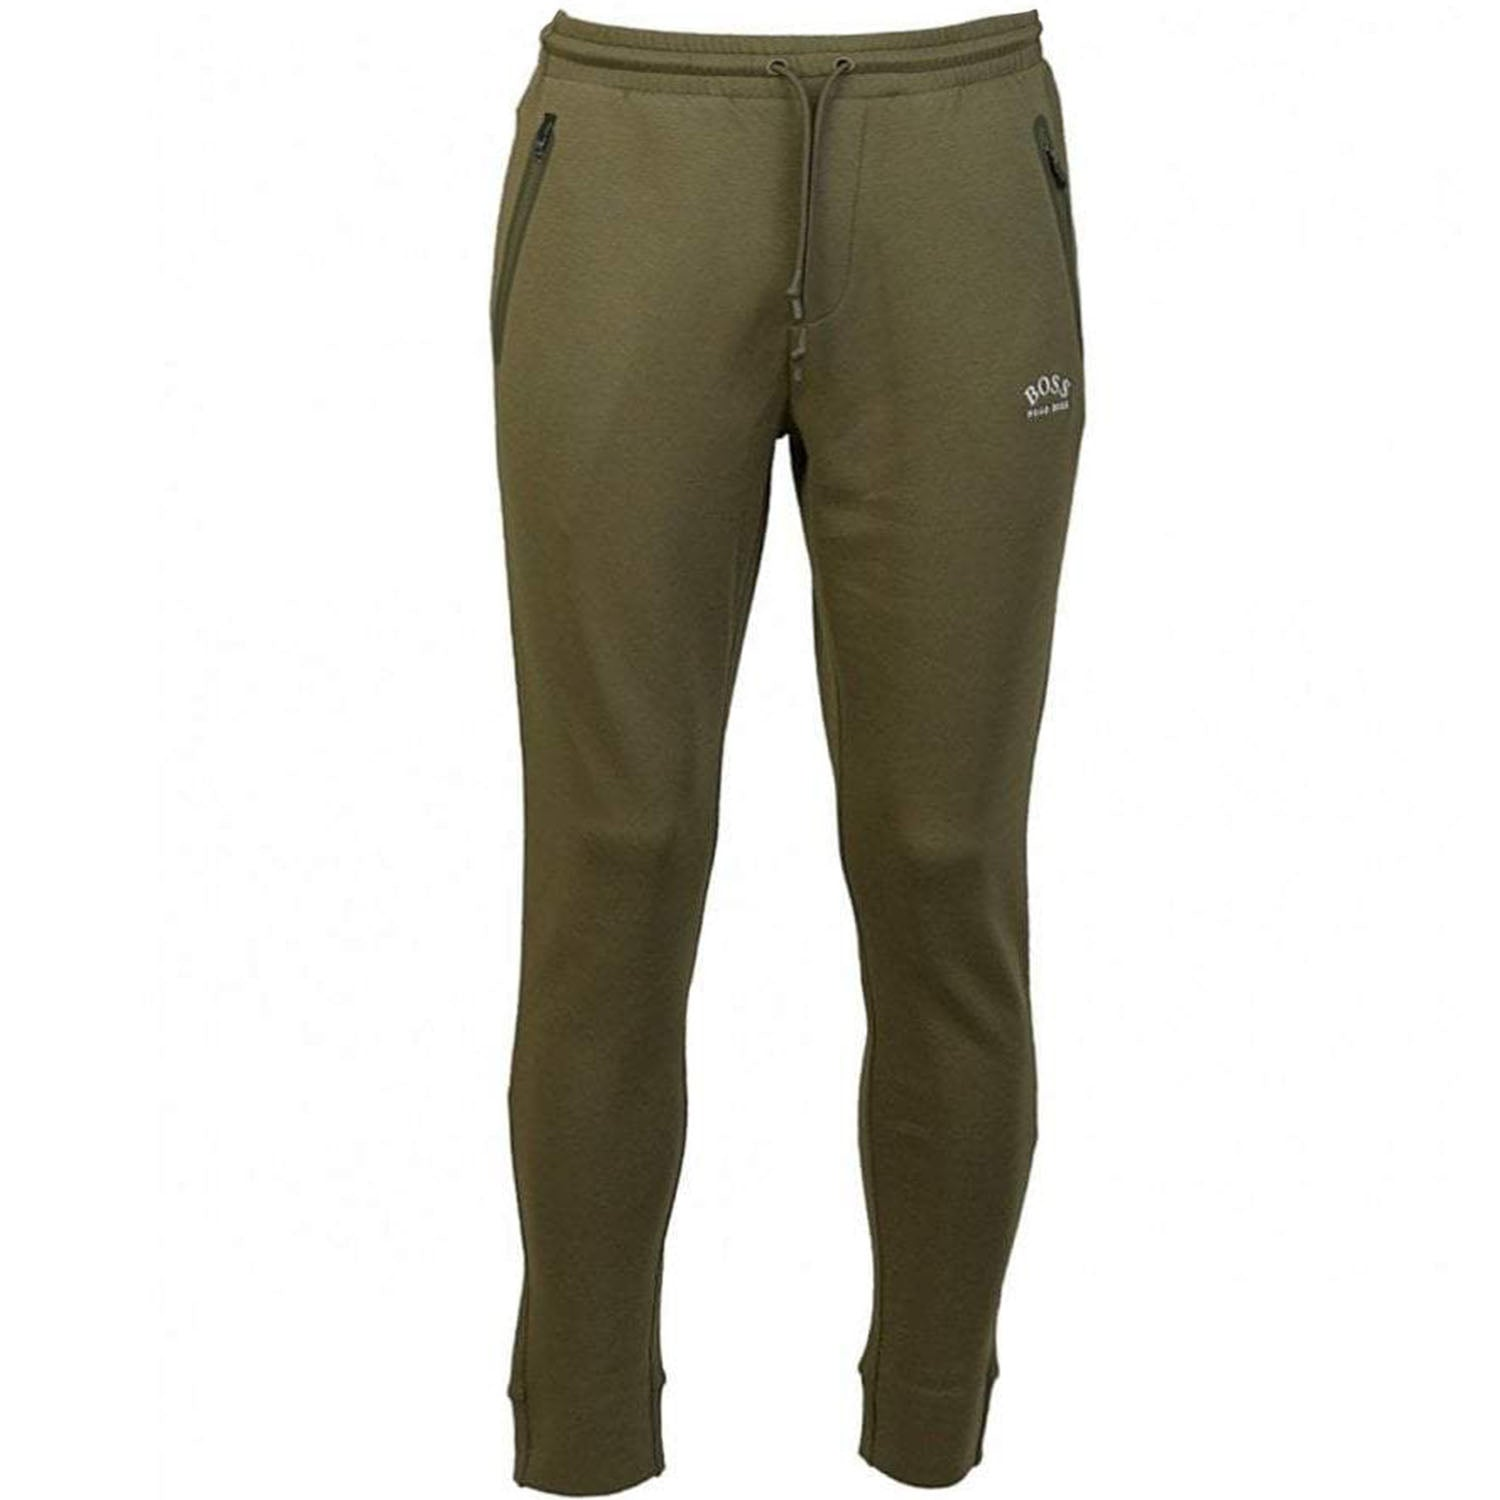 Hugo Boss Half-Cuffed Jogging Trousers with Curved Logo